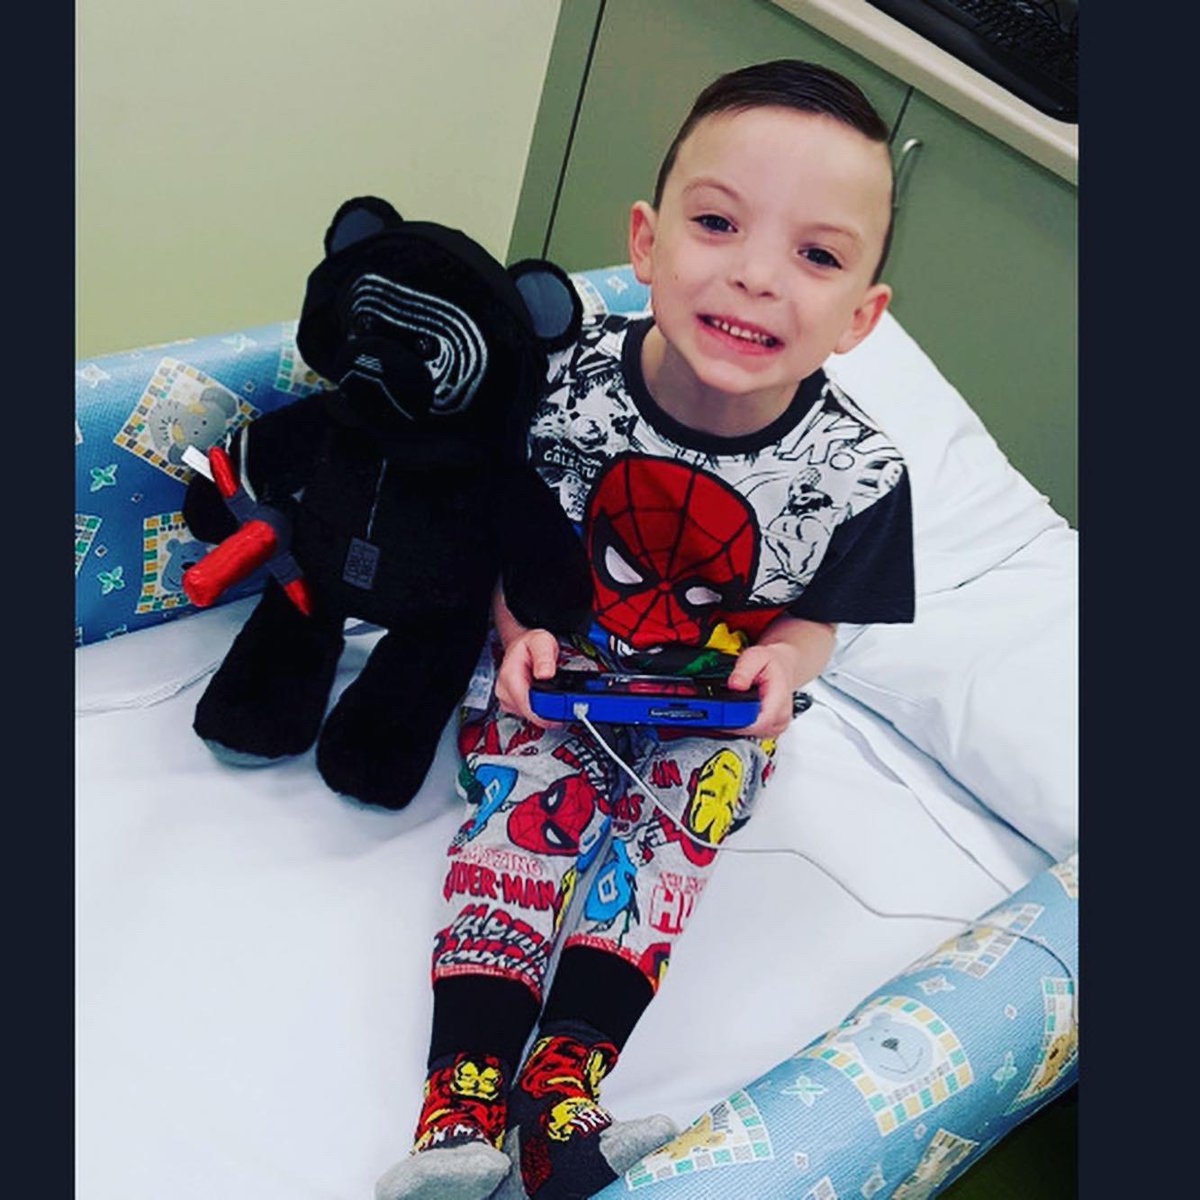 8yo Layton's 👦 encouraging children & young people to get active 🏃🏻♂️ Layton has #CysticFibrosis & despite having to take various meds with dail physio & lengthy hospital stays 🏥 he has a really positive attitude 💯👍  Keep doing what you're doing, Layton! 👏 #FeelGoodFriday